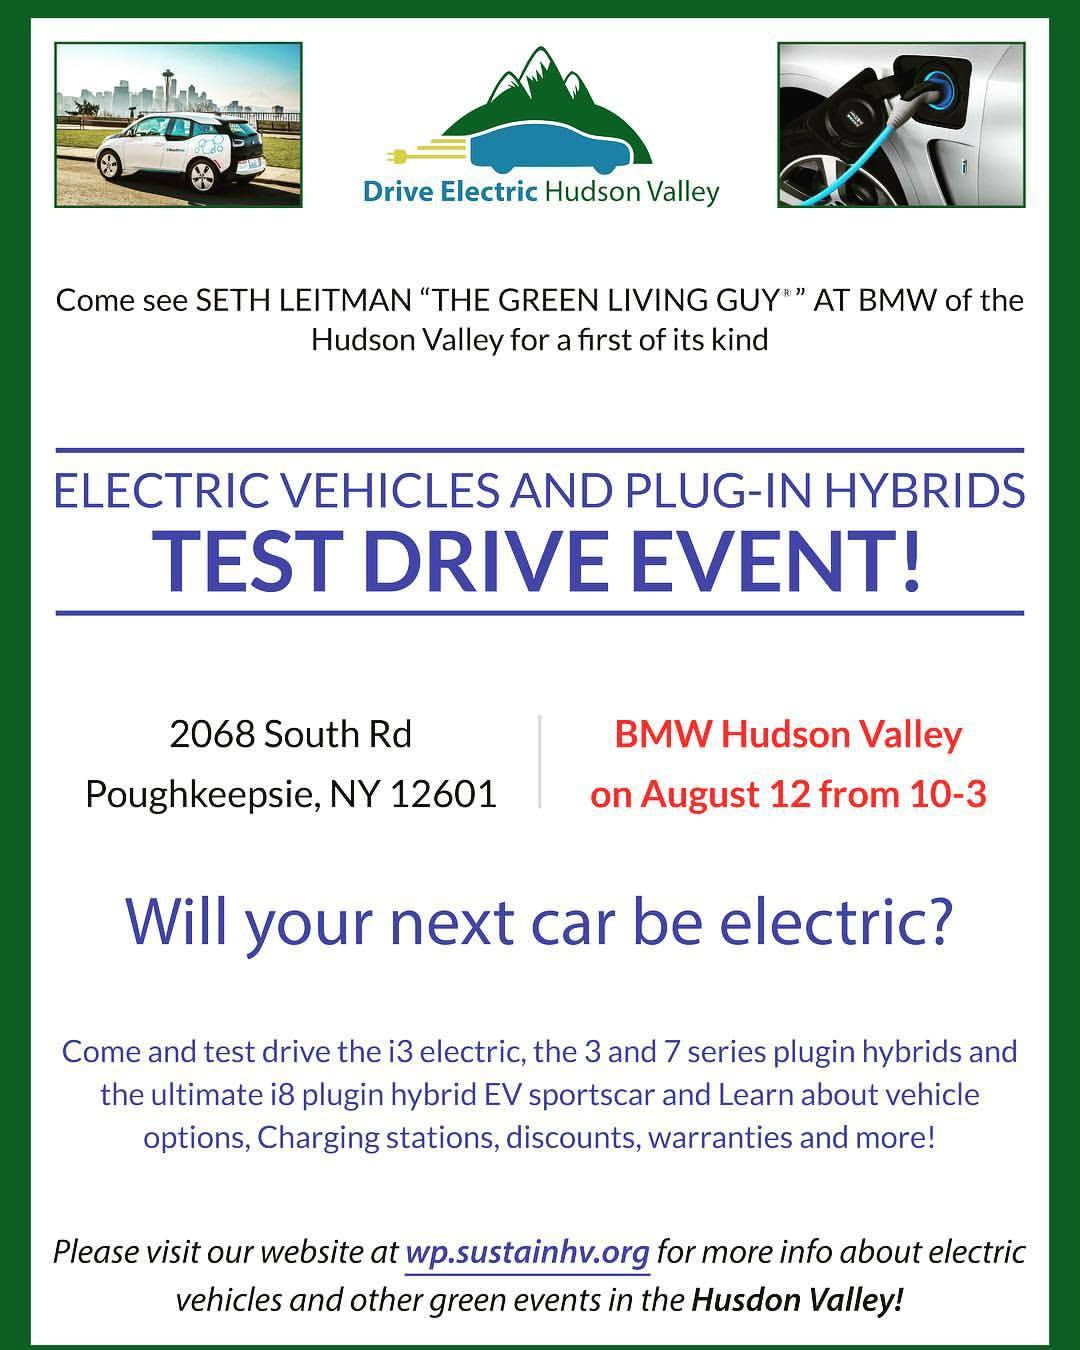 Very excited for this #driveelectrichudsonvalley @bmwi dealership event with @bmwusa #hudsonvalley on August 12 from 10-3. The #i8 will be there besides the 3 and 7 series Plugin hybrids, i3 electric too. Expect savings and rebates galore folks. #rebates #bmwi8 #bmwm3 #bmw7 #bmwhudsonvalley #bmwhybrid #ny #newyork #poughkeepsieny #dutchesscounty #fishkillny  (at BMW of the Hudson Valley)